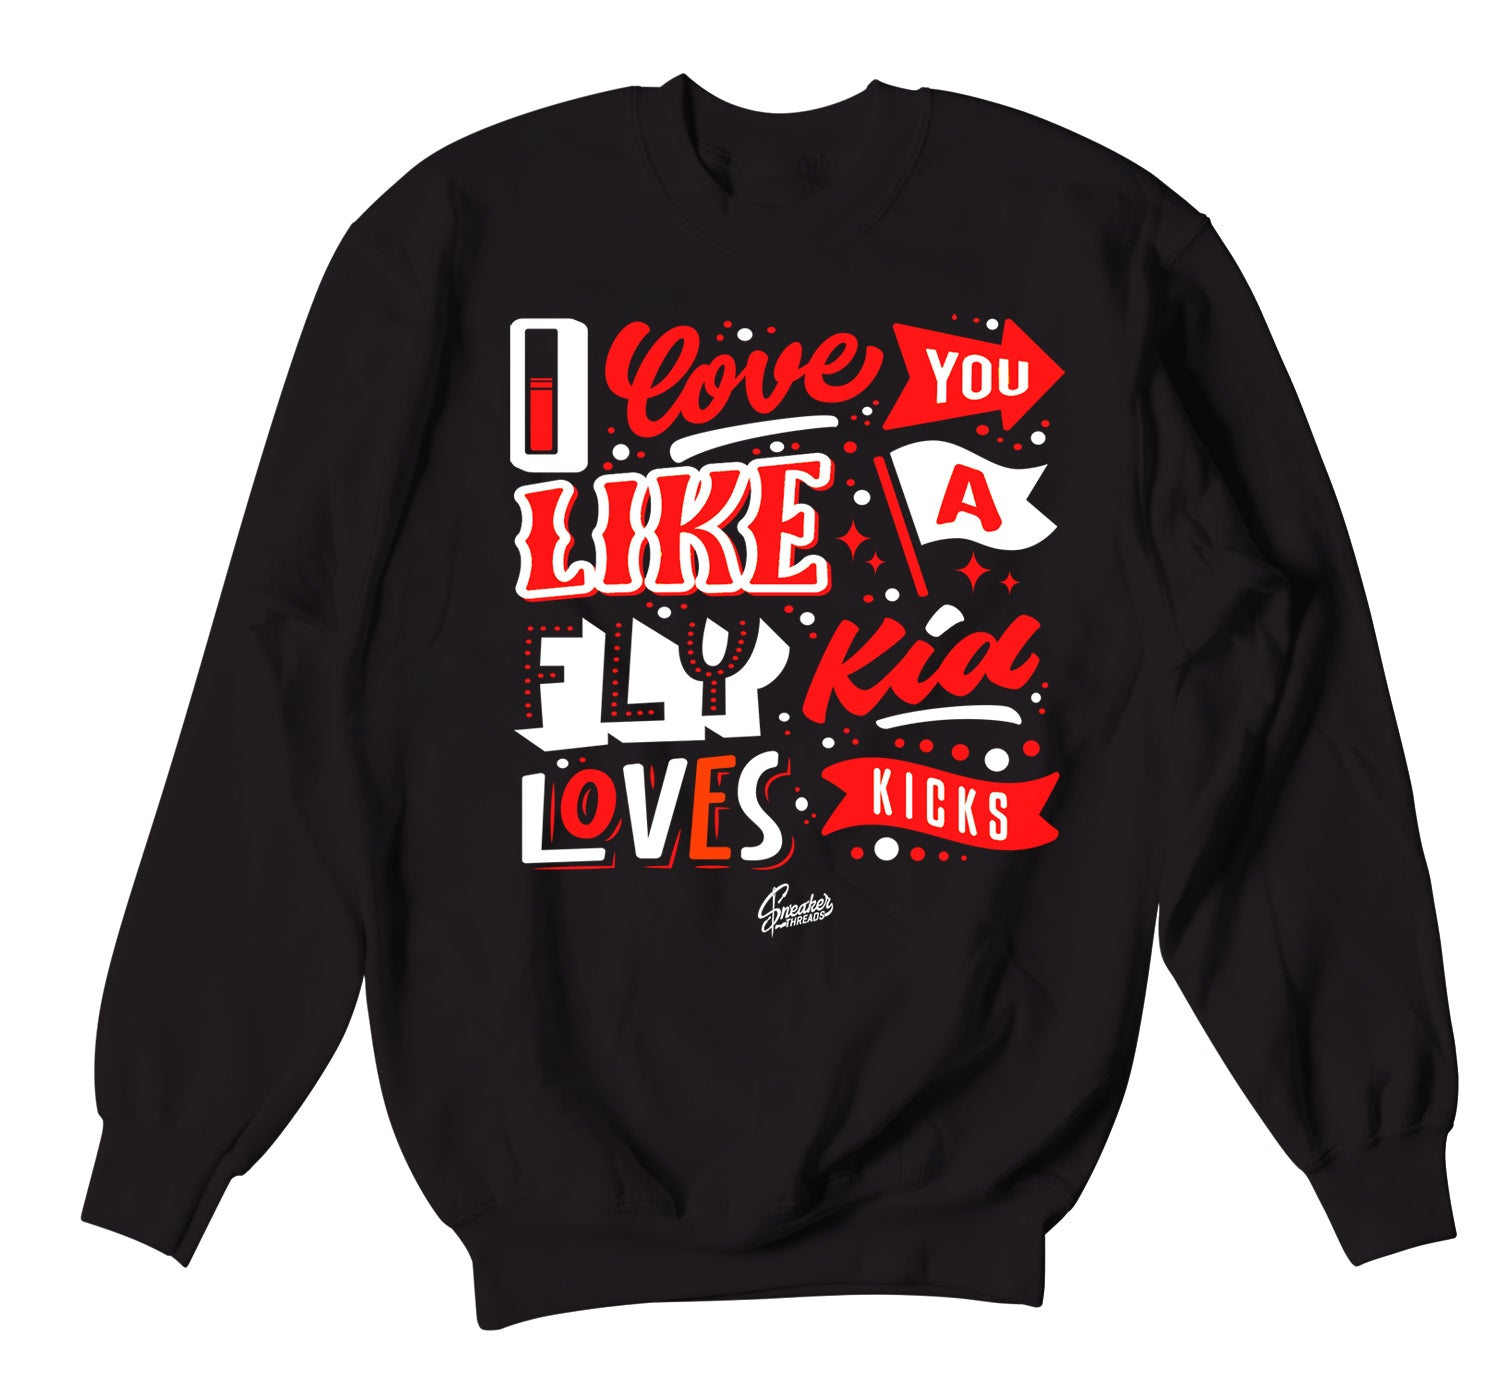 JOrdan 4 Fire Red sneaker matching crewnecks